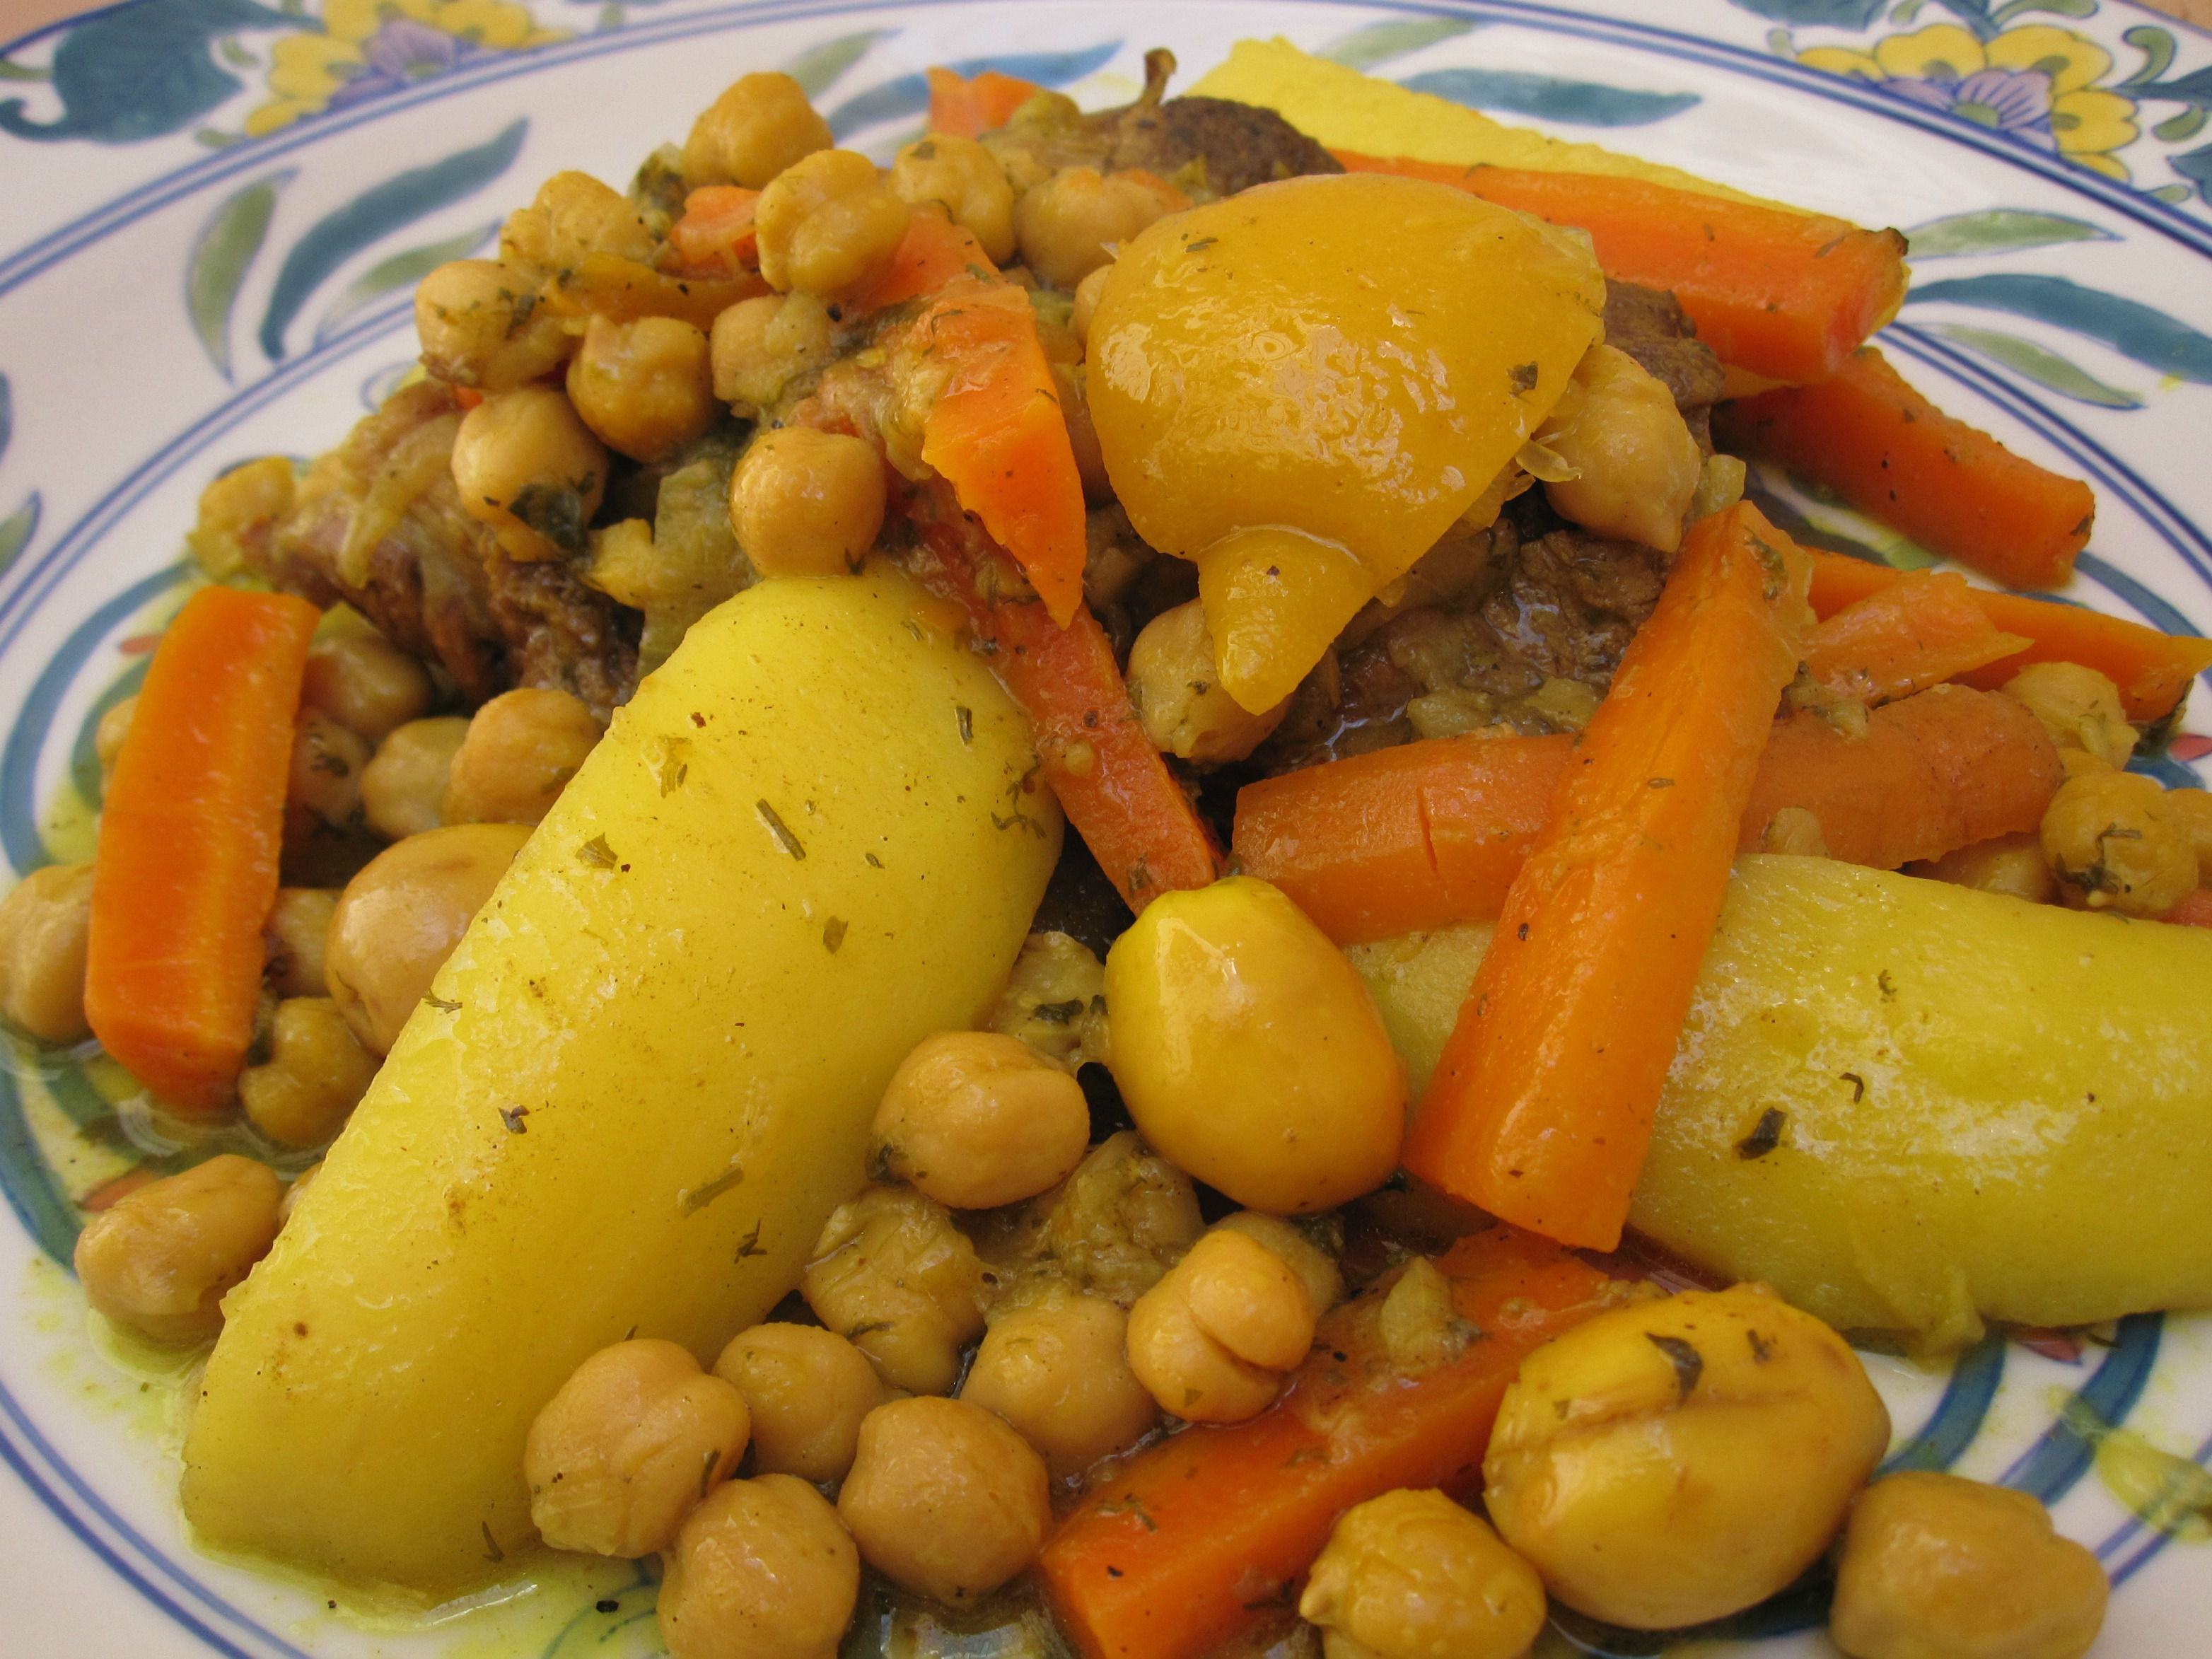 Moroccan Tagine With Carrots, Potatoes and Chickpeas